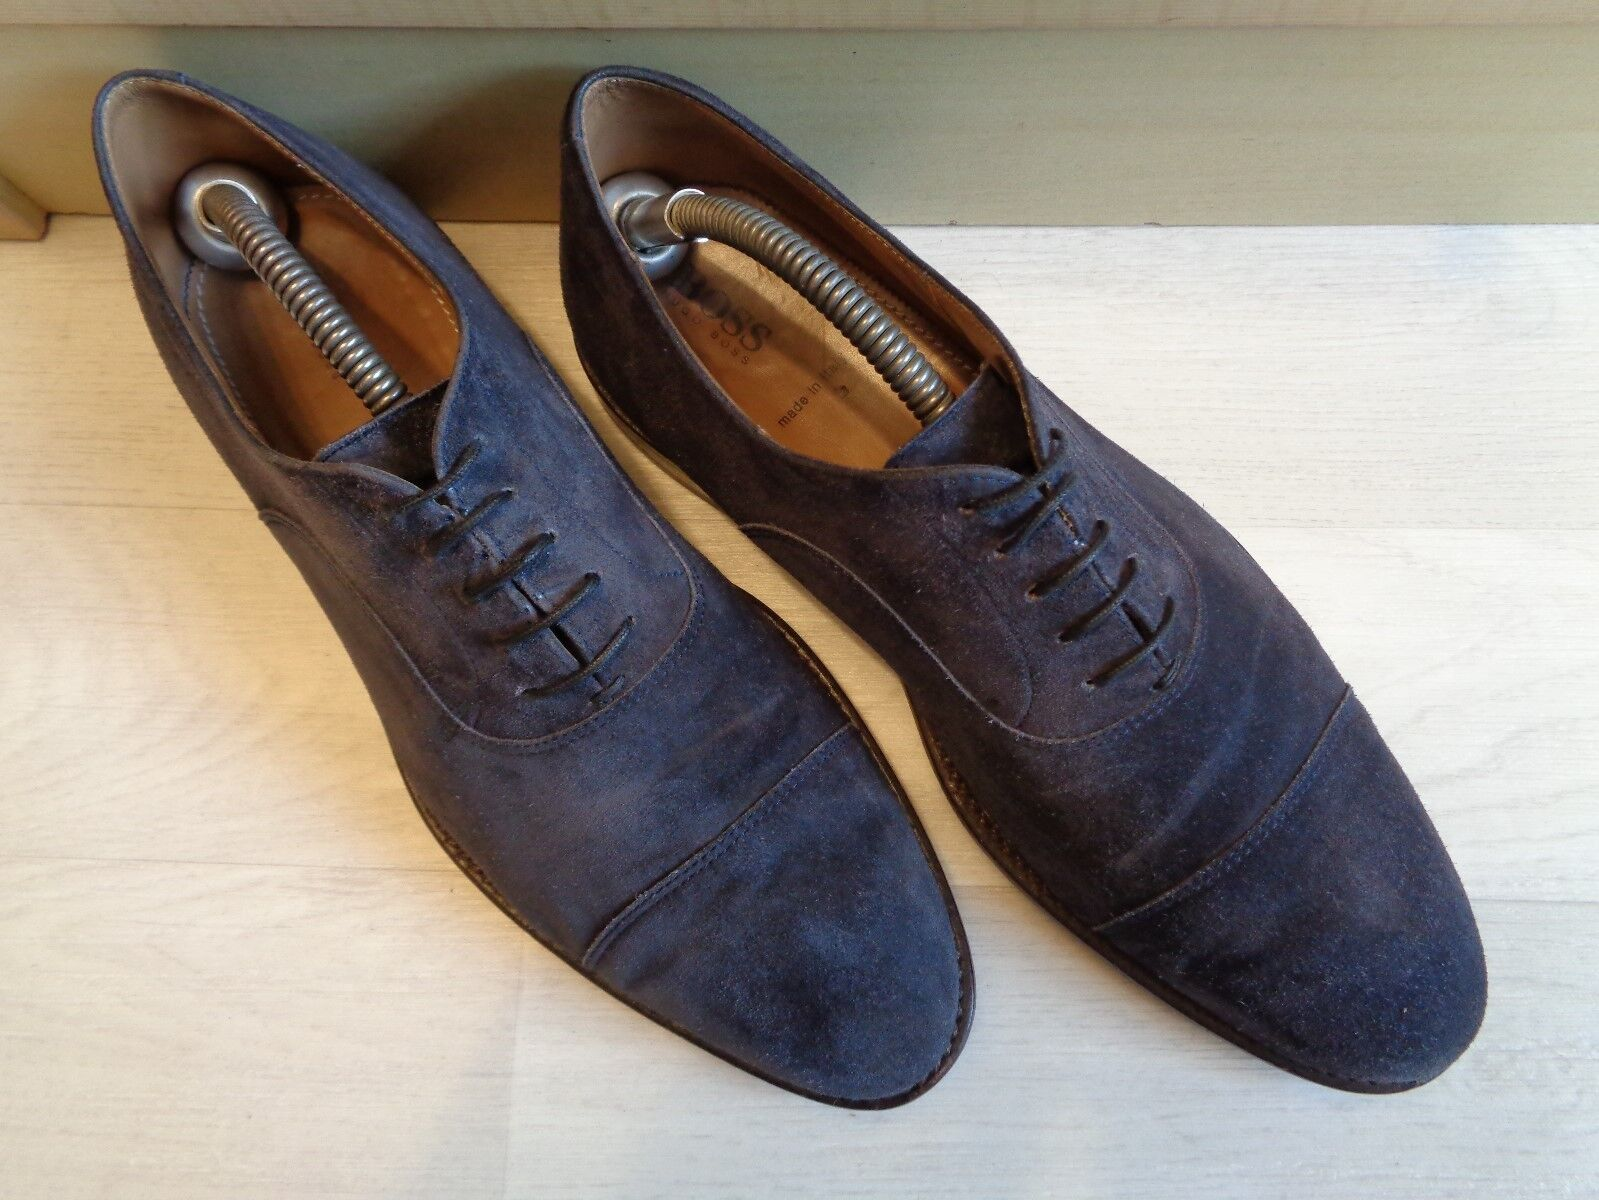 Hugo Boss Boss Boss navy suede oxford UK 8 42 mens full leather cap toe business lace up  163784